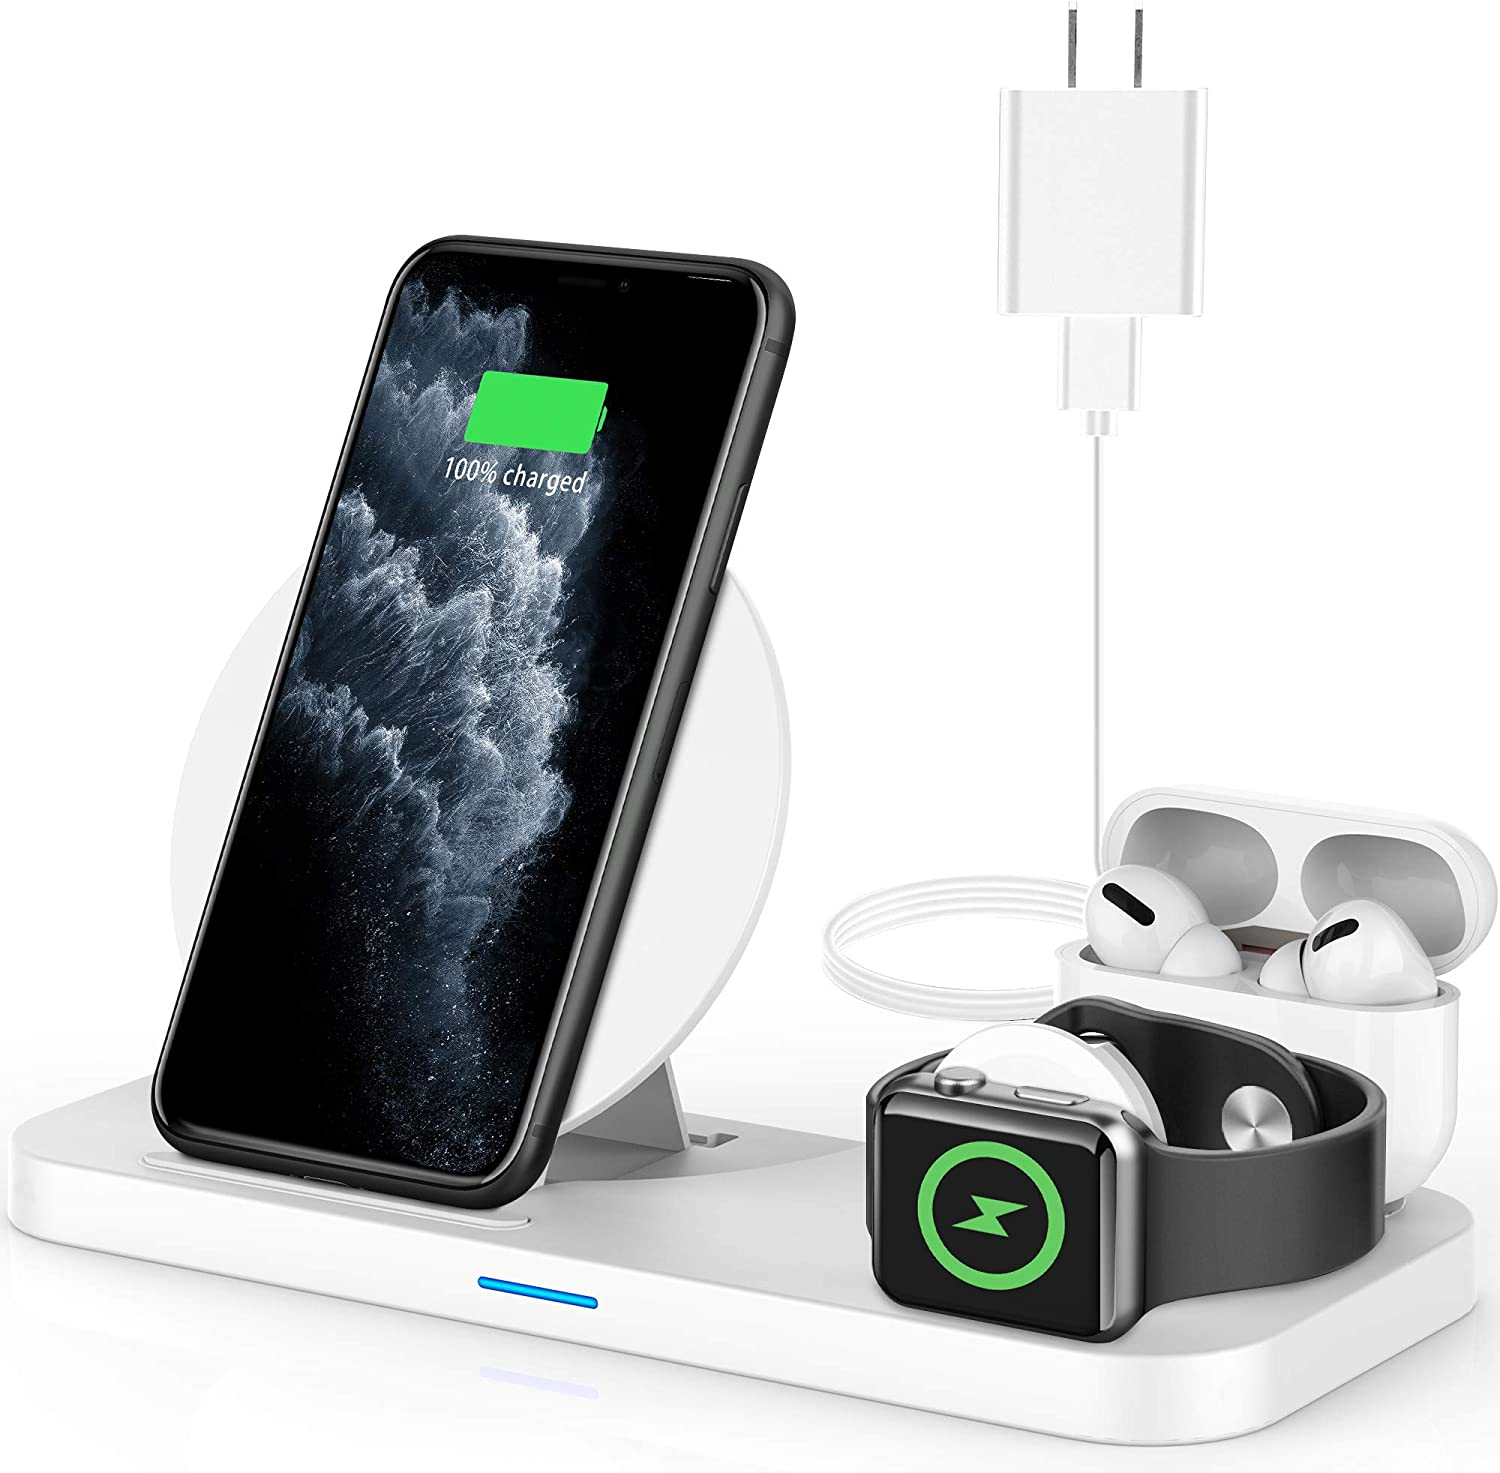 Powlaken 3 in 1 Wireless Charger, Wireless Charging Station Compatible for Apple iWatch Series SE 6 5 4 3 2 1, AirPods Pro 2, Wireless Charging Stand Dock for iPhone 11, 11 Pro Max, XR, XS, X(White)